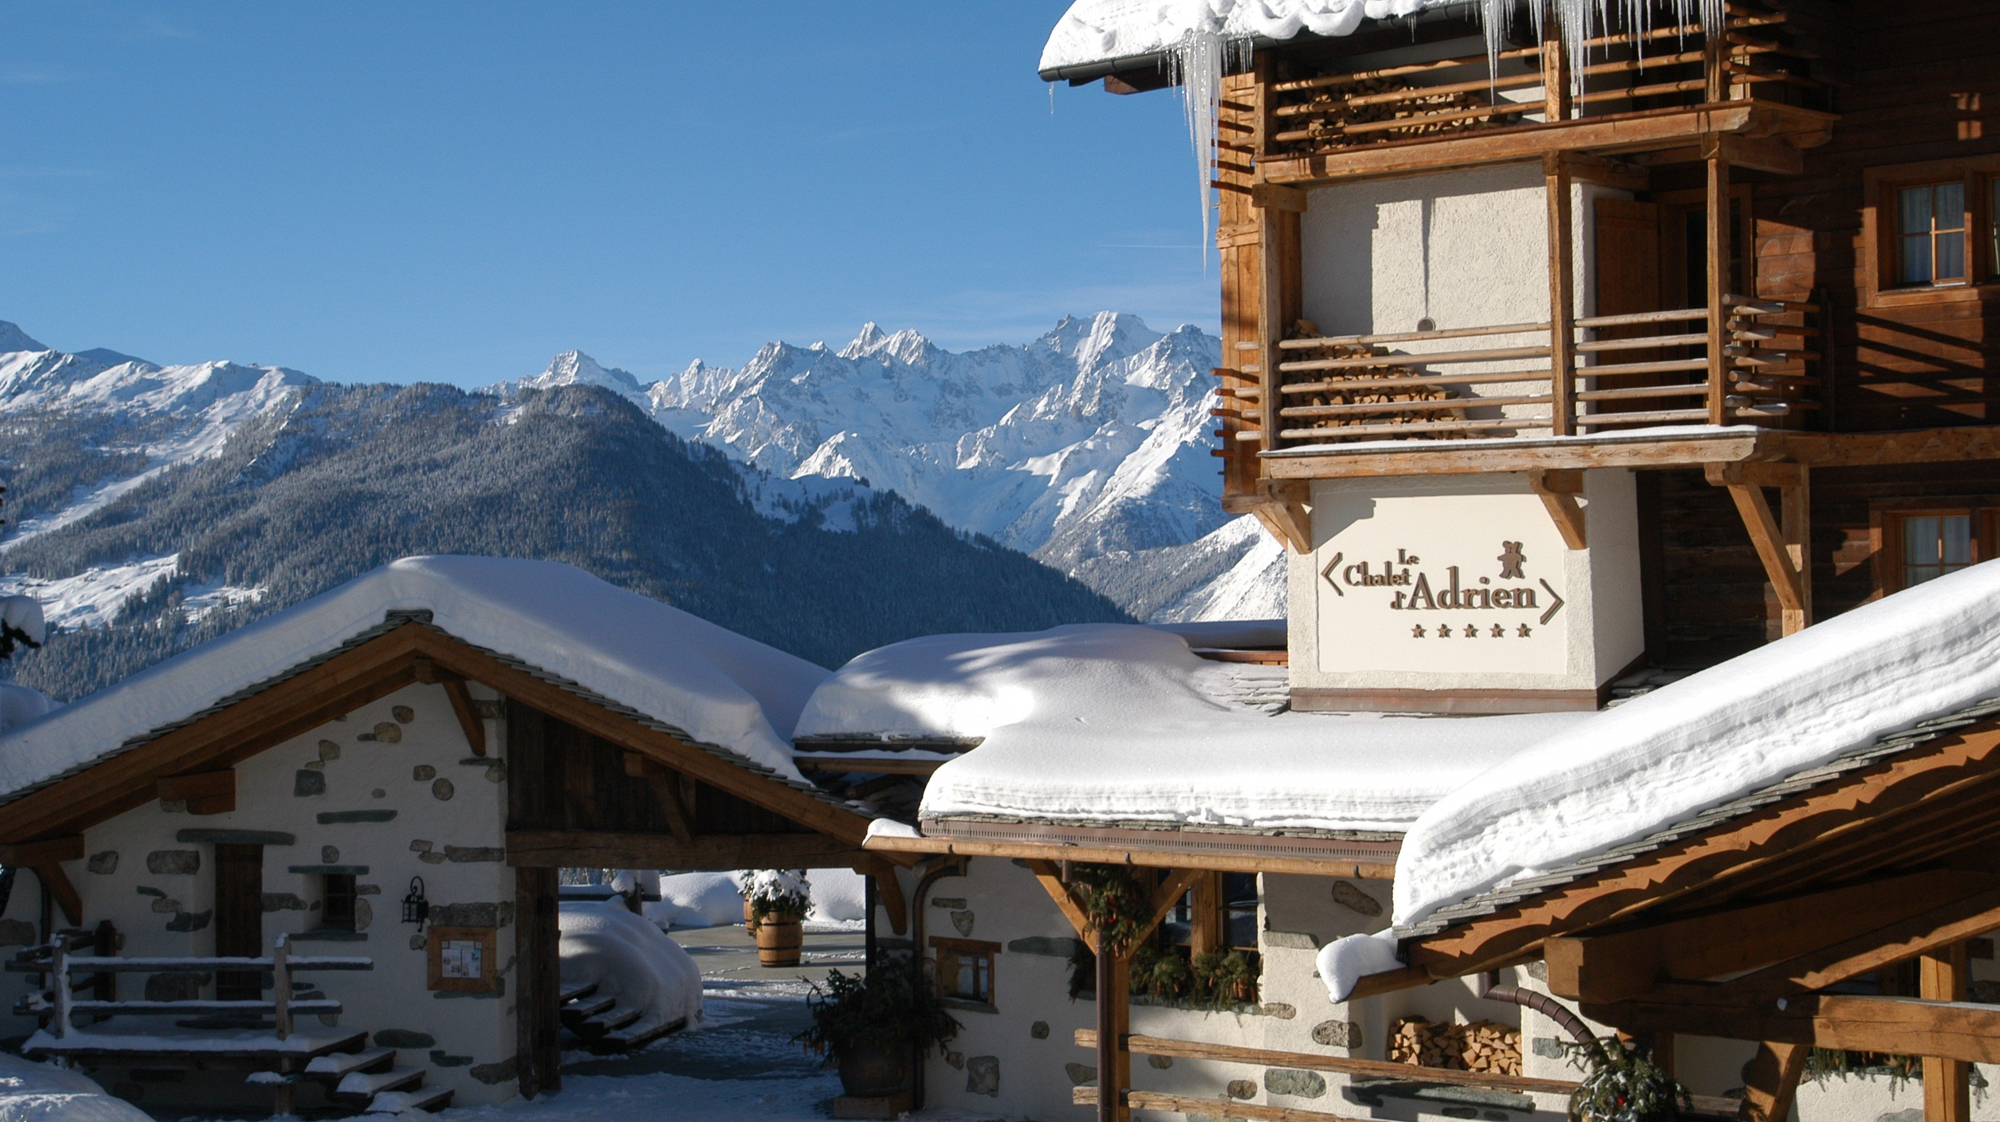 The Chalet d'Adrien in Winter